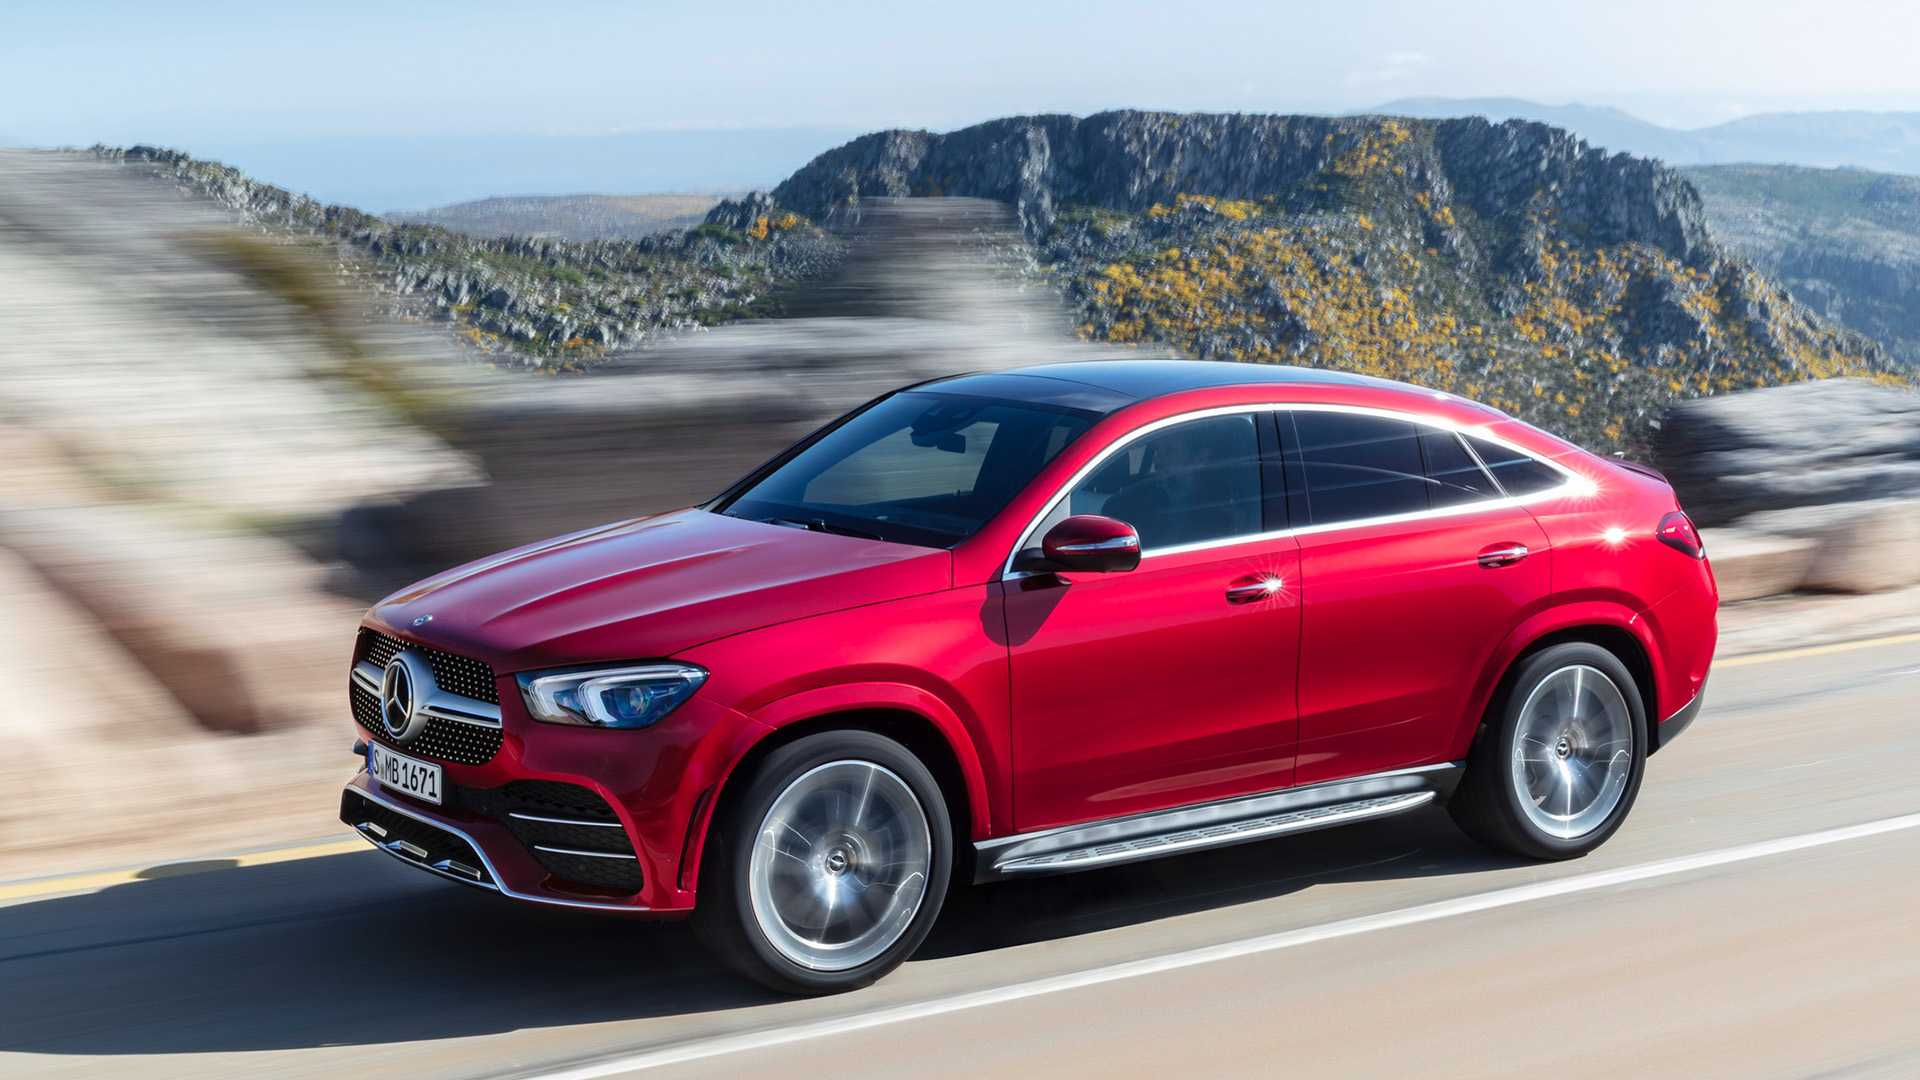 2021 Mercedes-Benz GLE Coupe (Color: Designo Hyacinth Red Metallic) Front Three-Quarter Wallpapers (2)